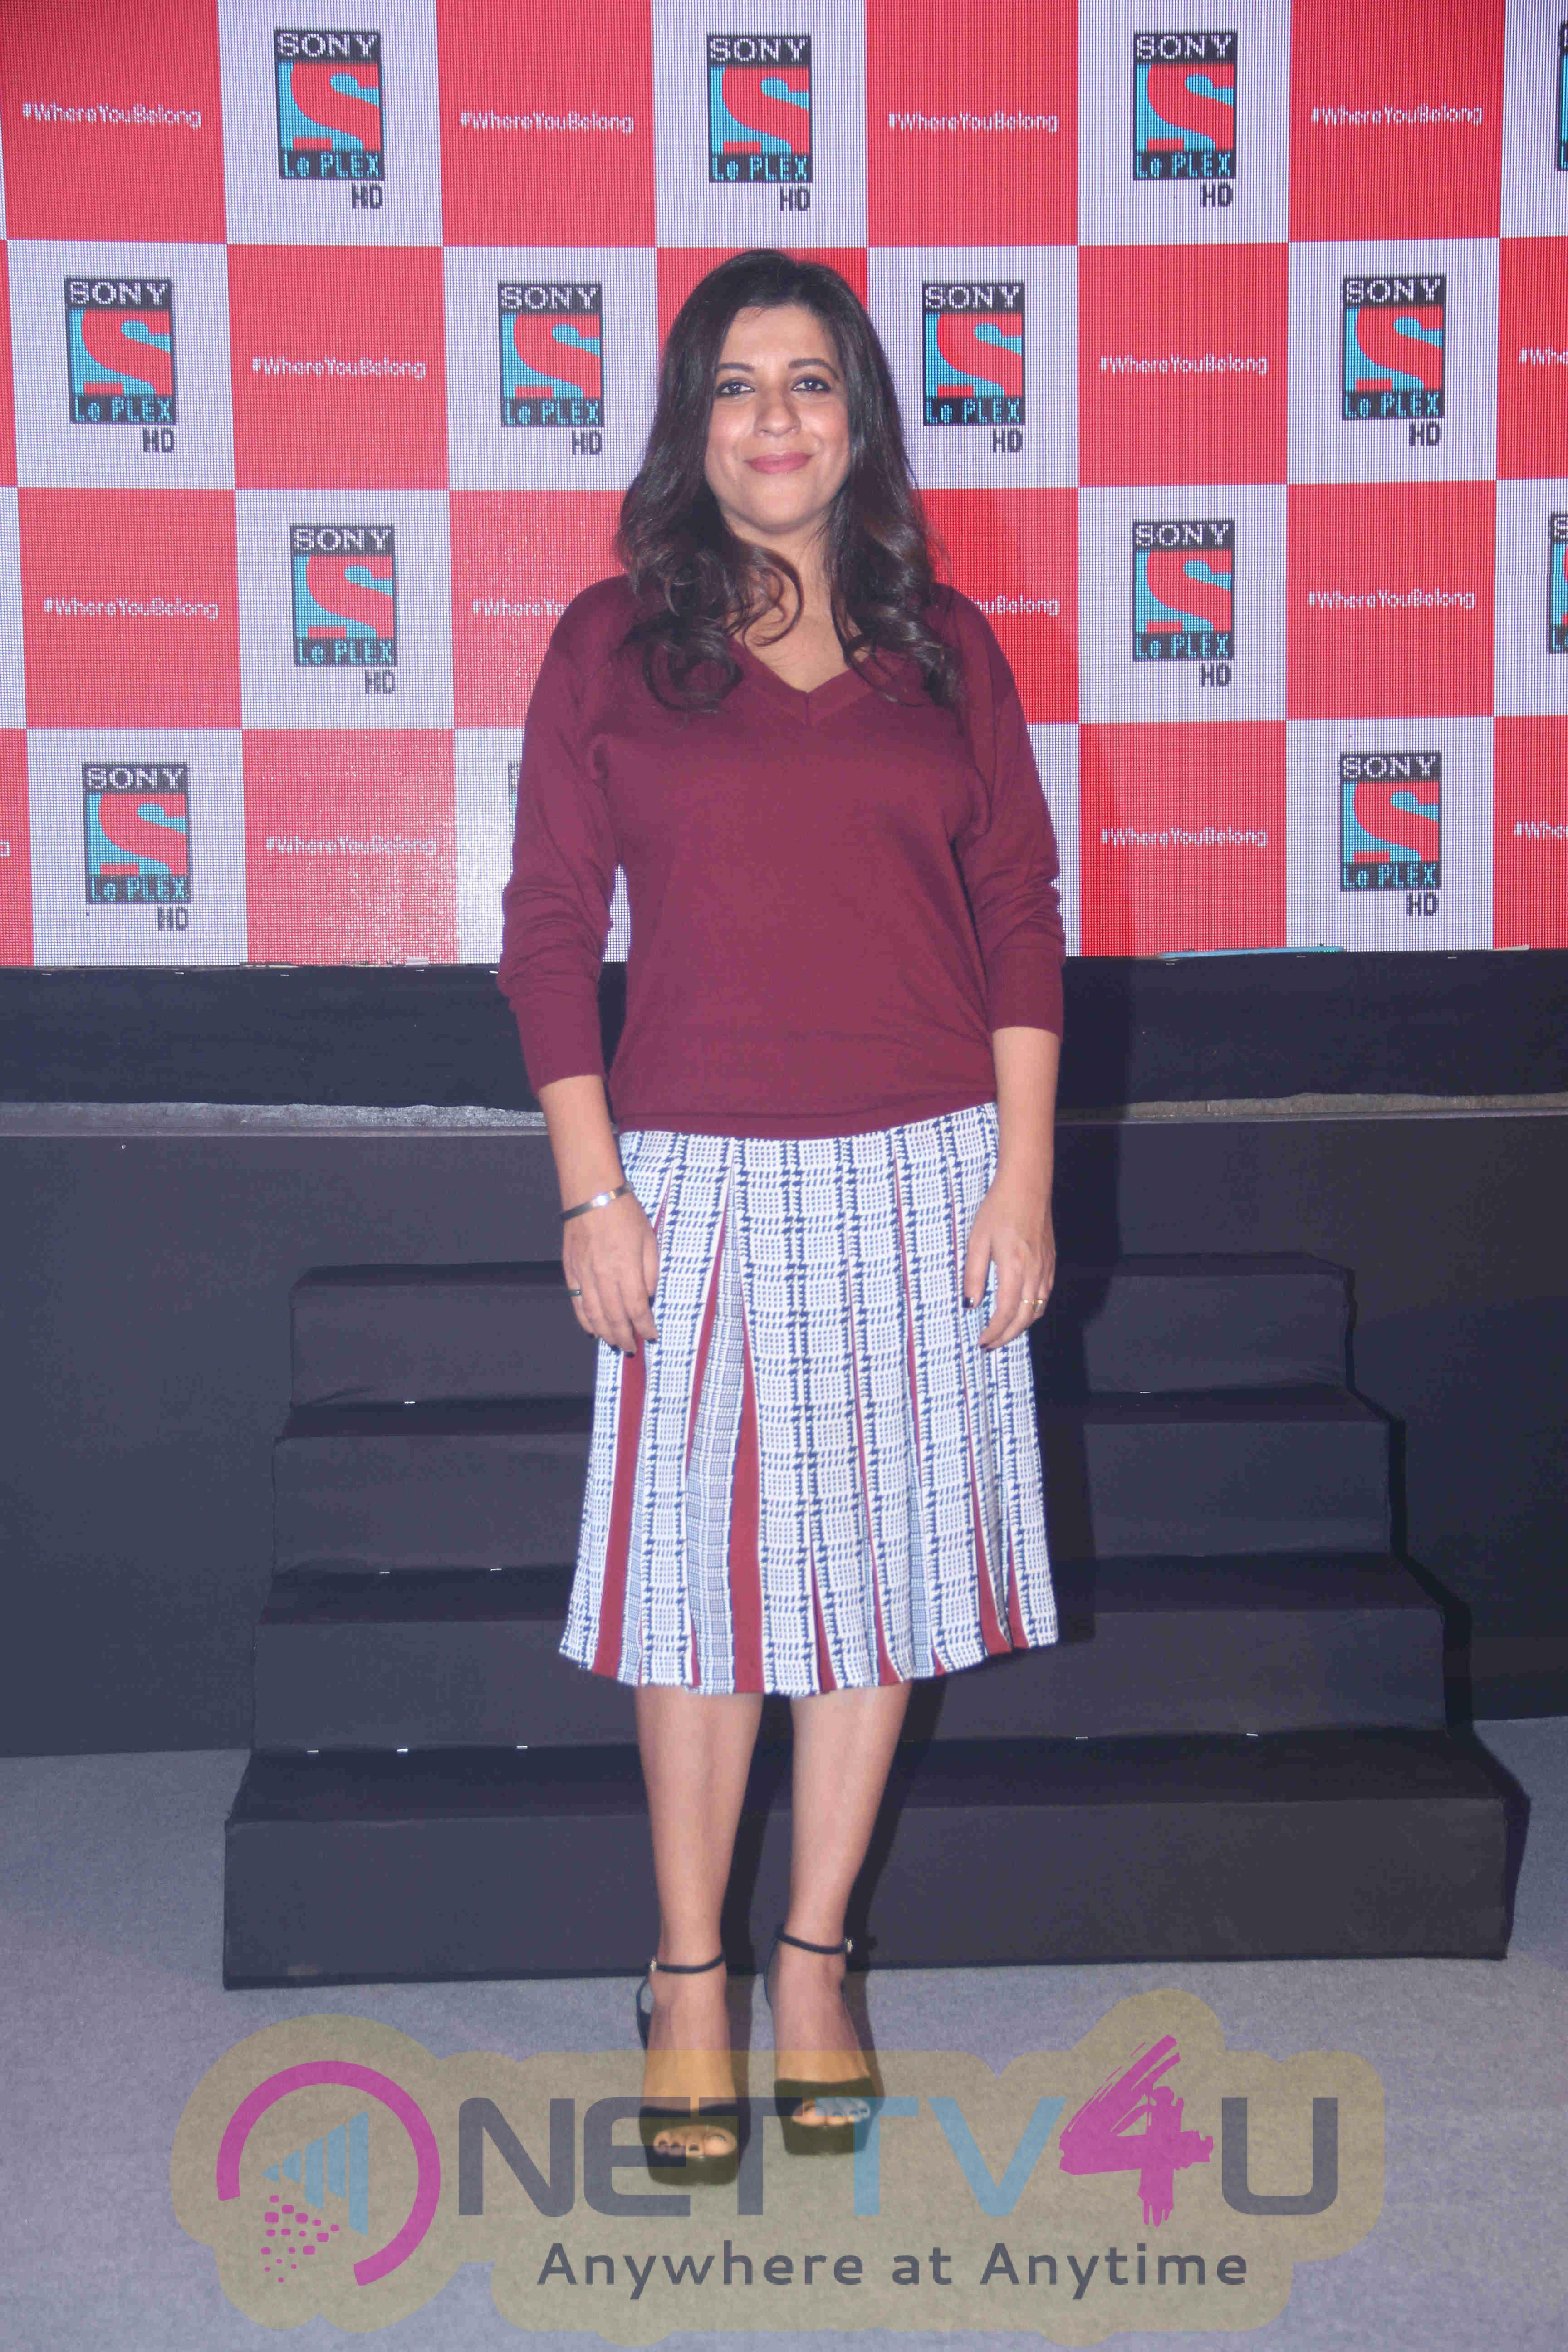 Launch Of English Movie Channel Sony Le Plex HD With Community Ambassador Zoya Akhtar Images Hindi Gallery